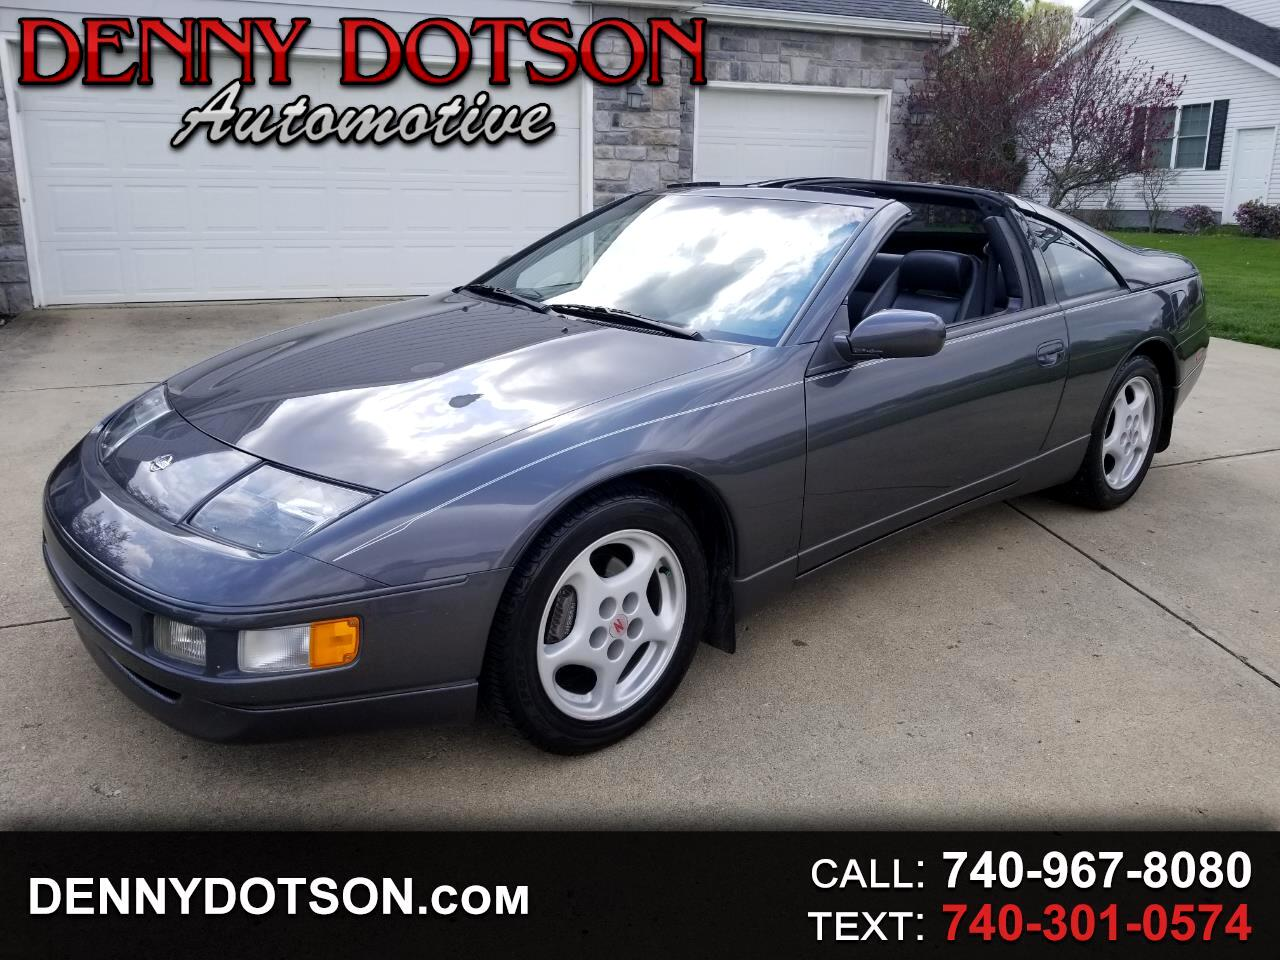 1991 Nissan 300ZX 2dr Hatchback Coupe 2+2 5-Spd